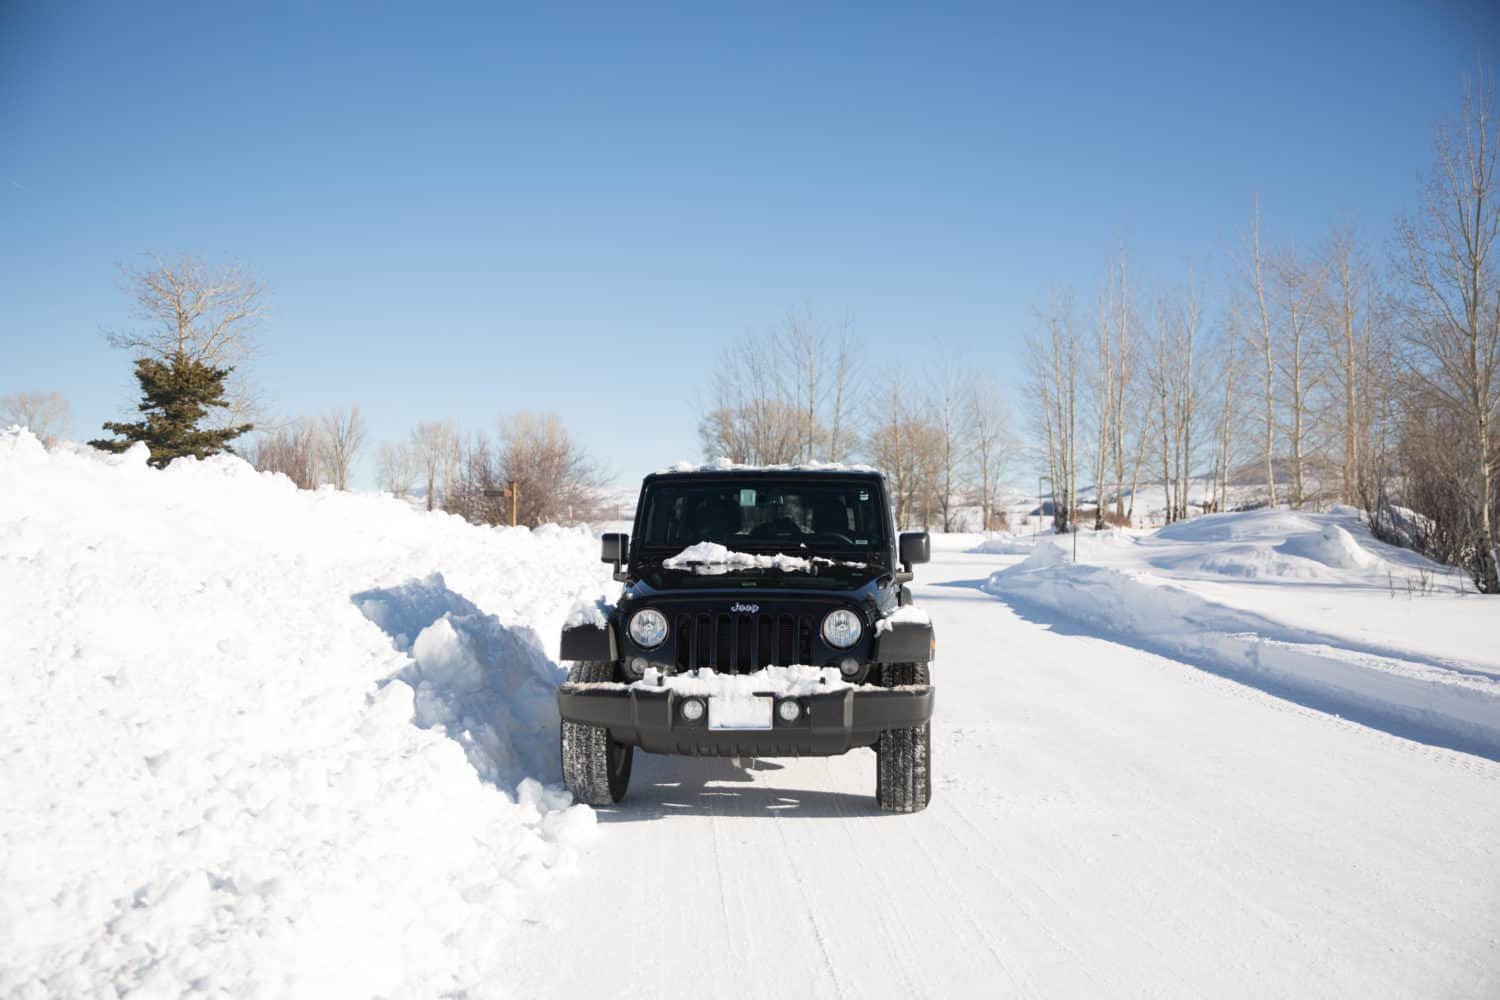 Road trip planning in winter, jeep in the snow